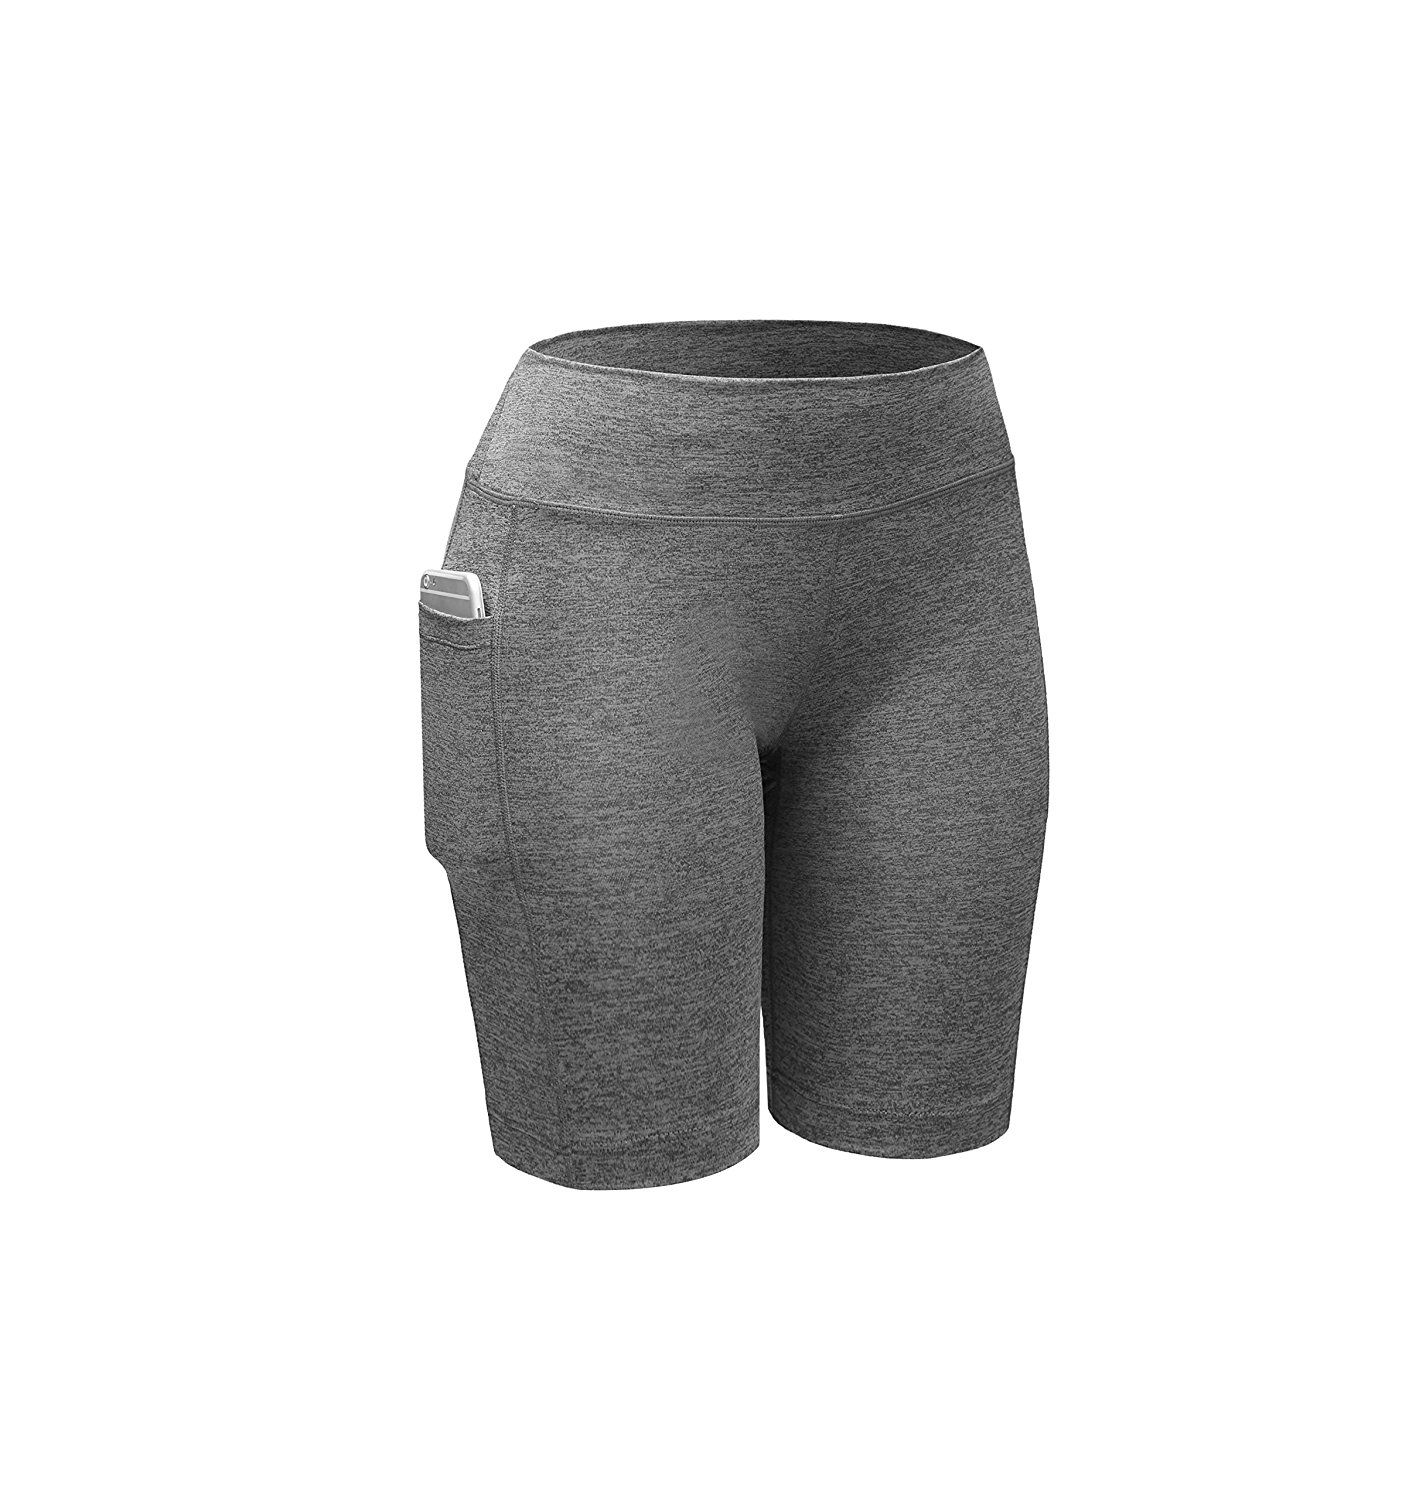 Women's Athletic Compression Shorts with Side Pocket for Active Wear, Casual Wear, Street Wear, Lounge Wear